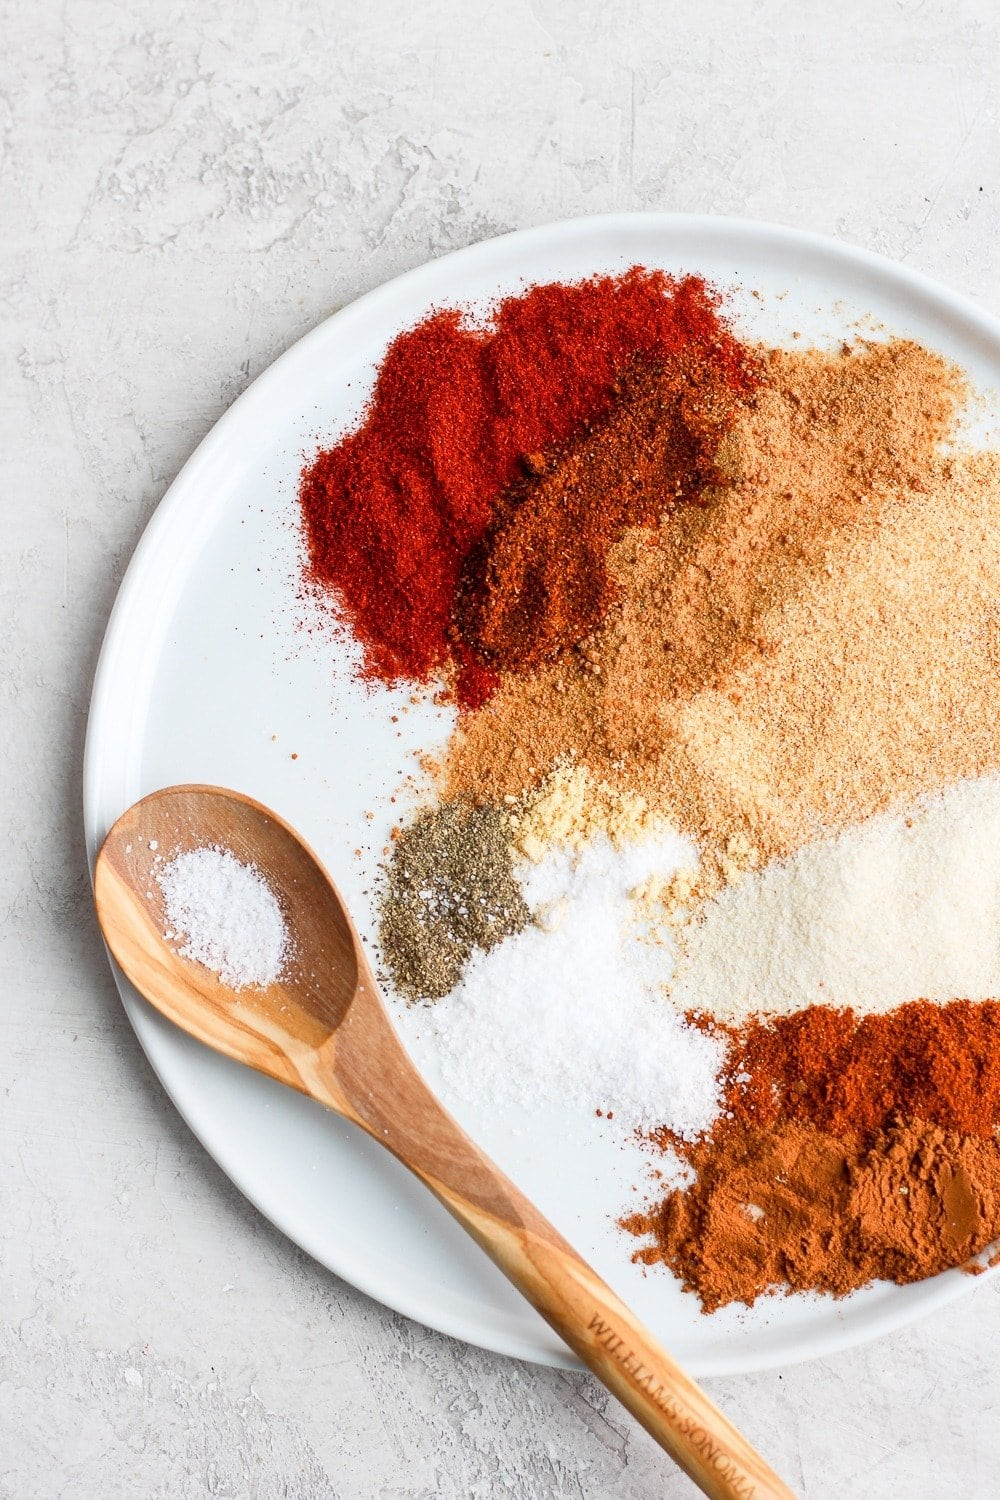 dry rub ingredients on a plate